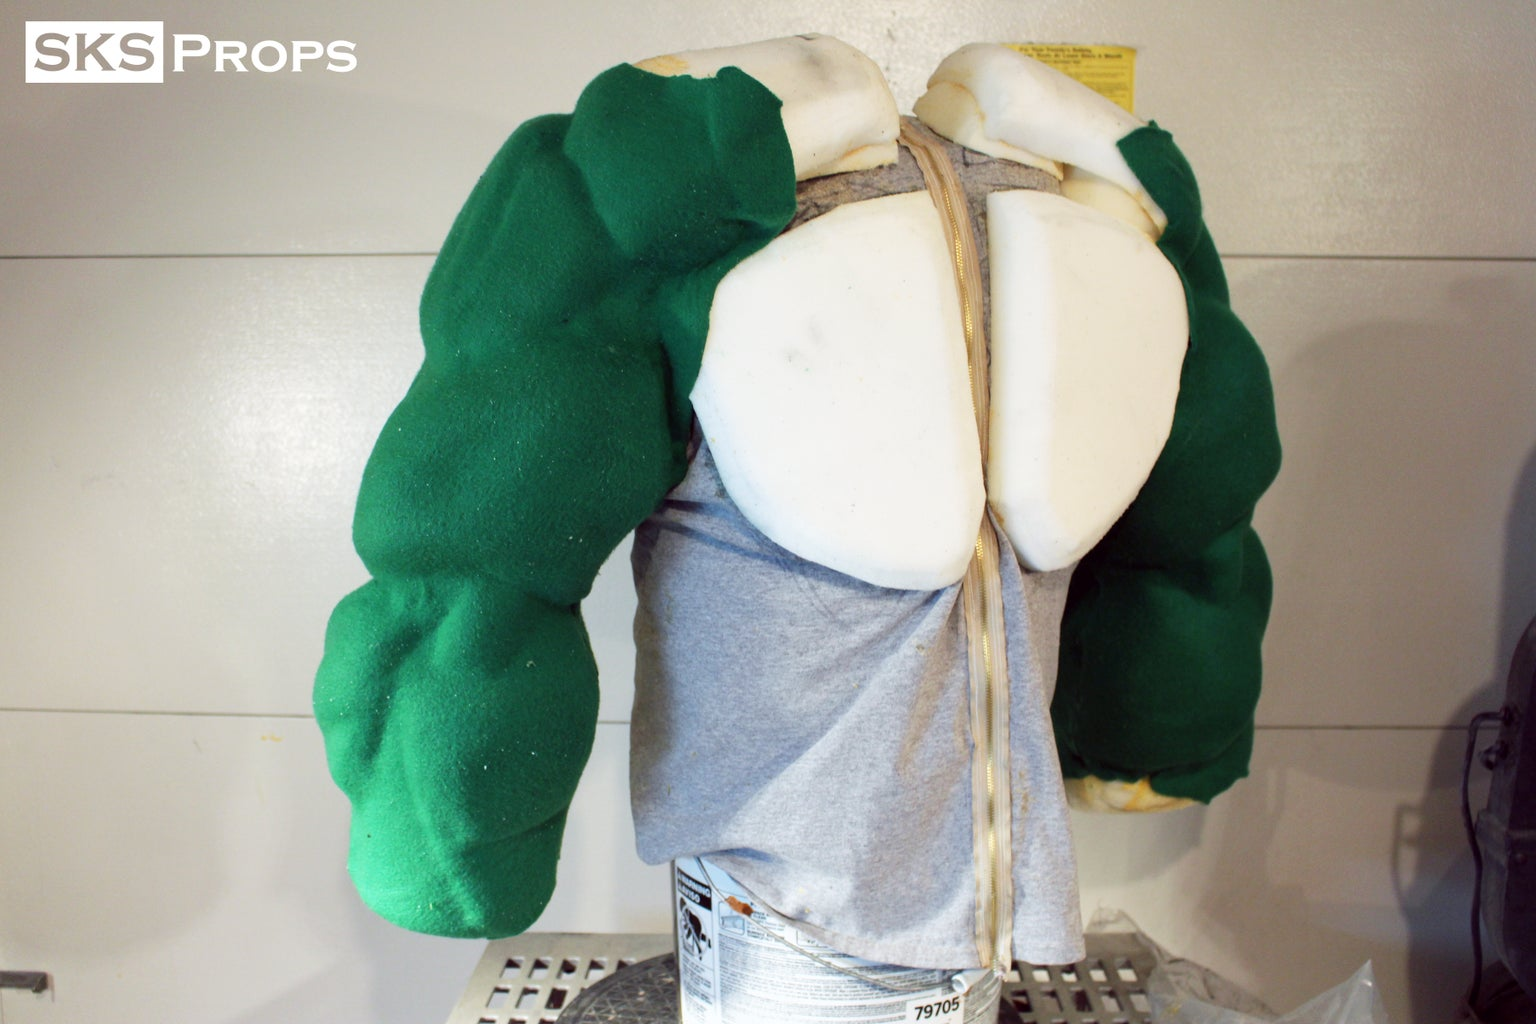 Skinning the Muscle Suit